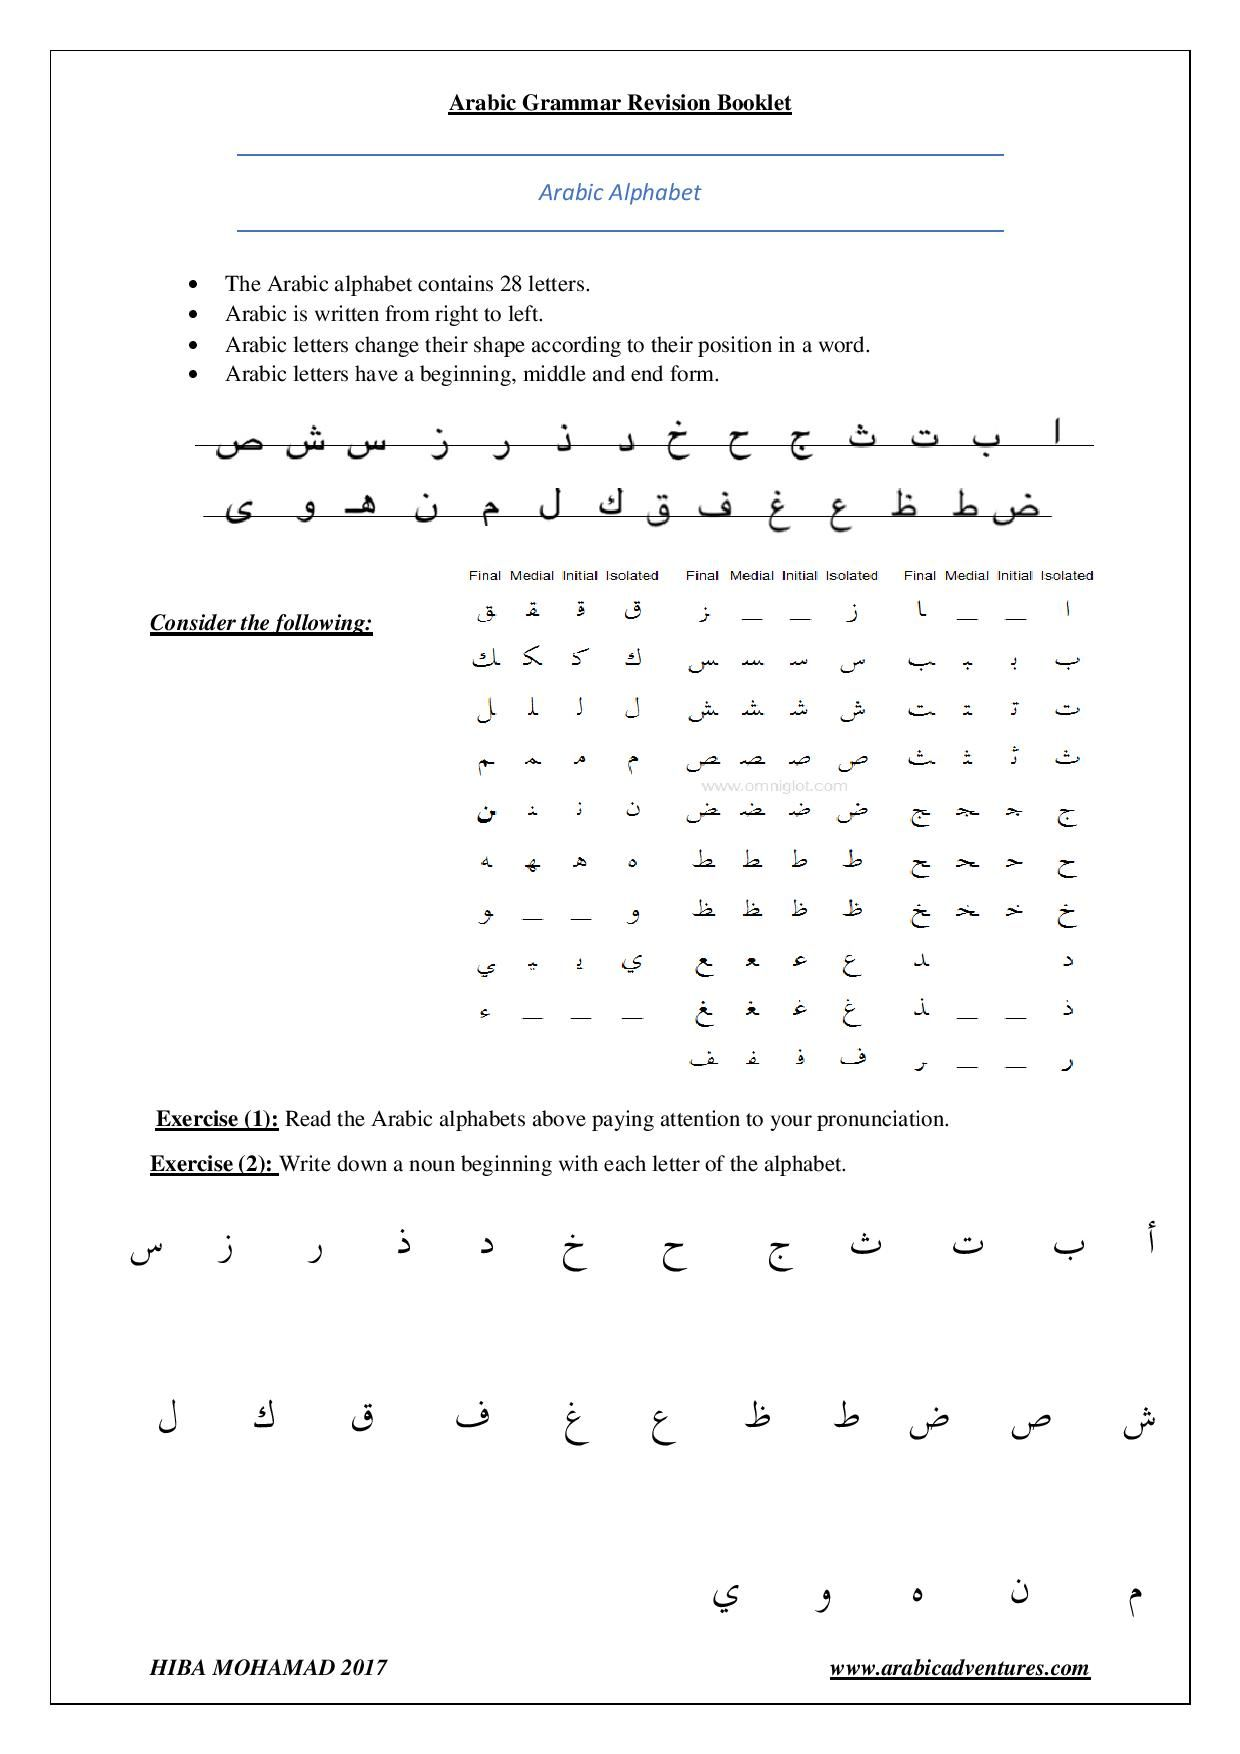 medium resolution of Arabic For Year 1 Worksheet   Printable Worksheets and Activities for  Teachers